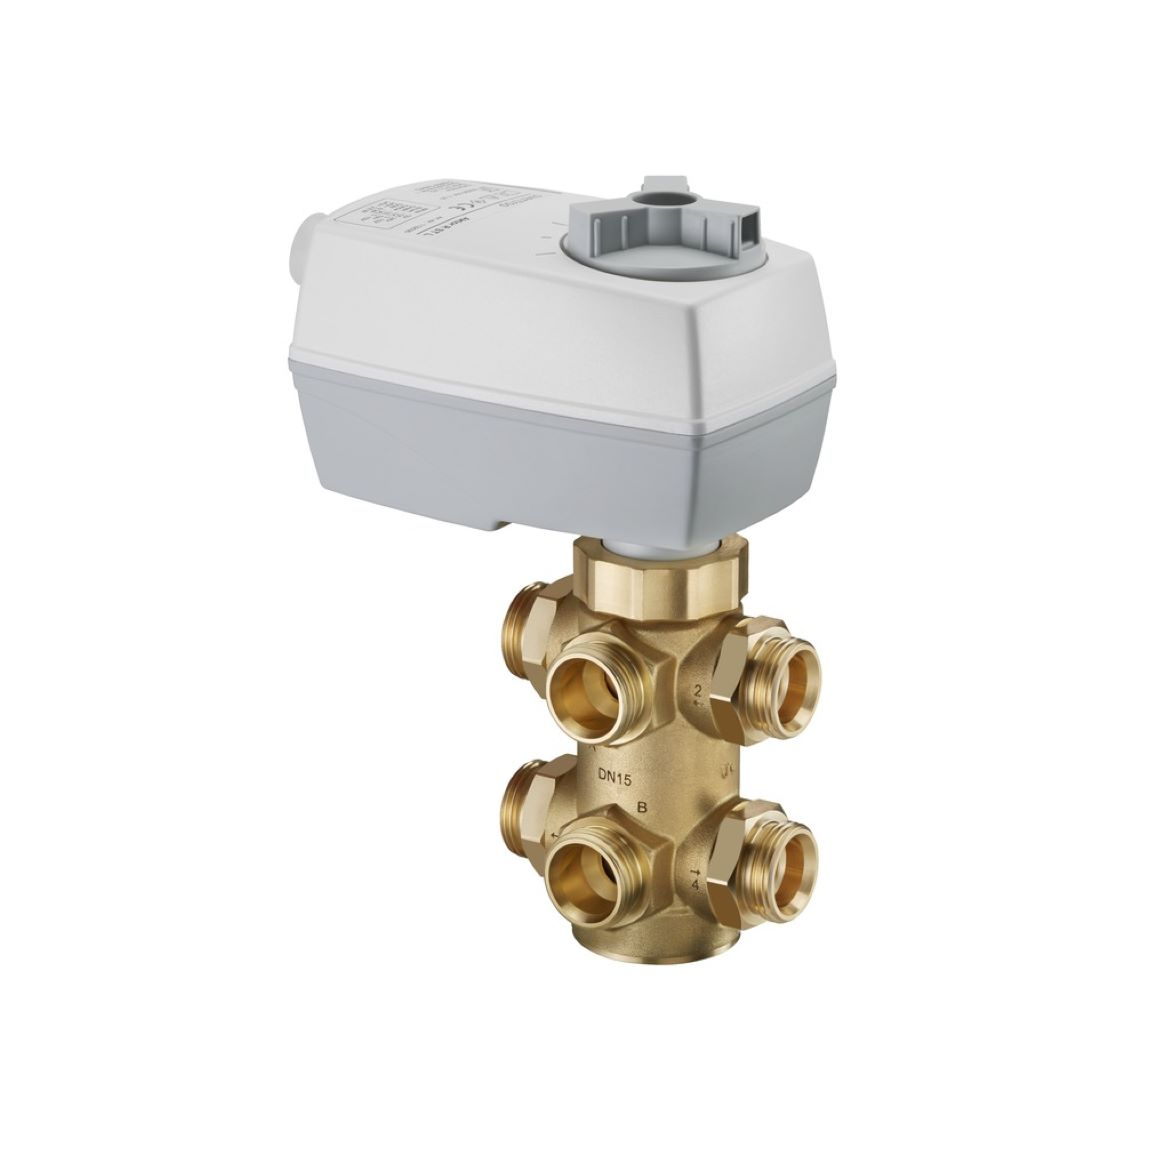 """Optibal W6"" Six-way ball valve for heating/cooling operation control"